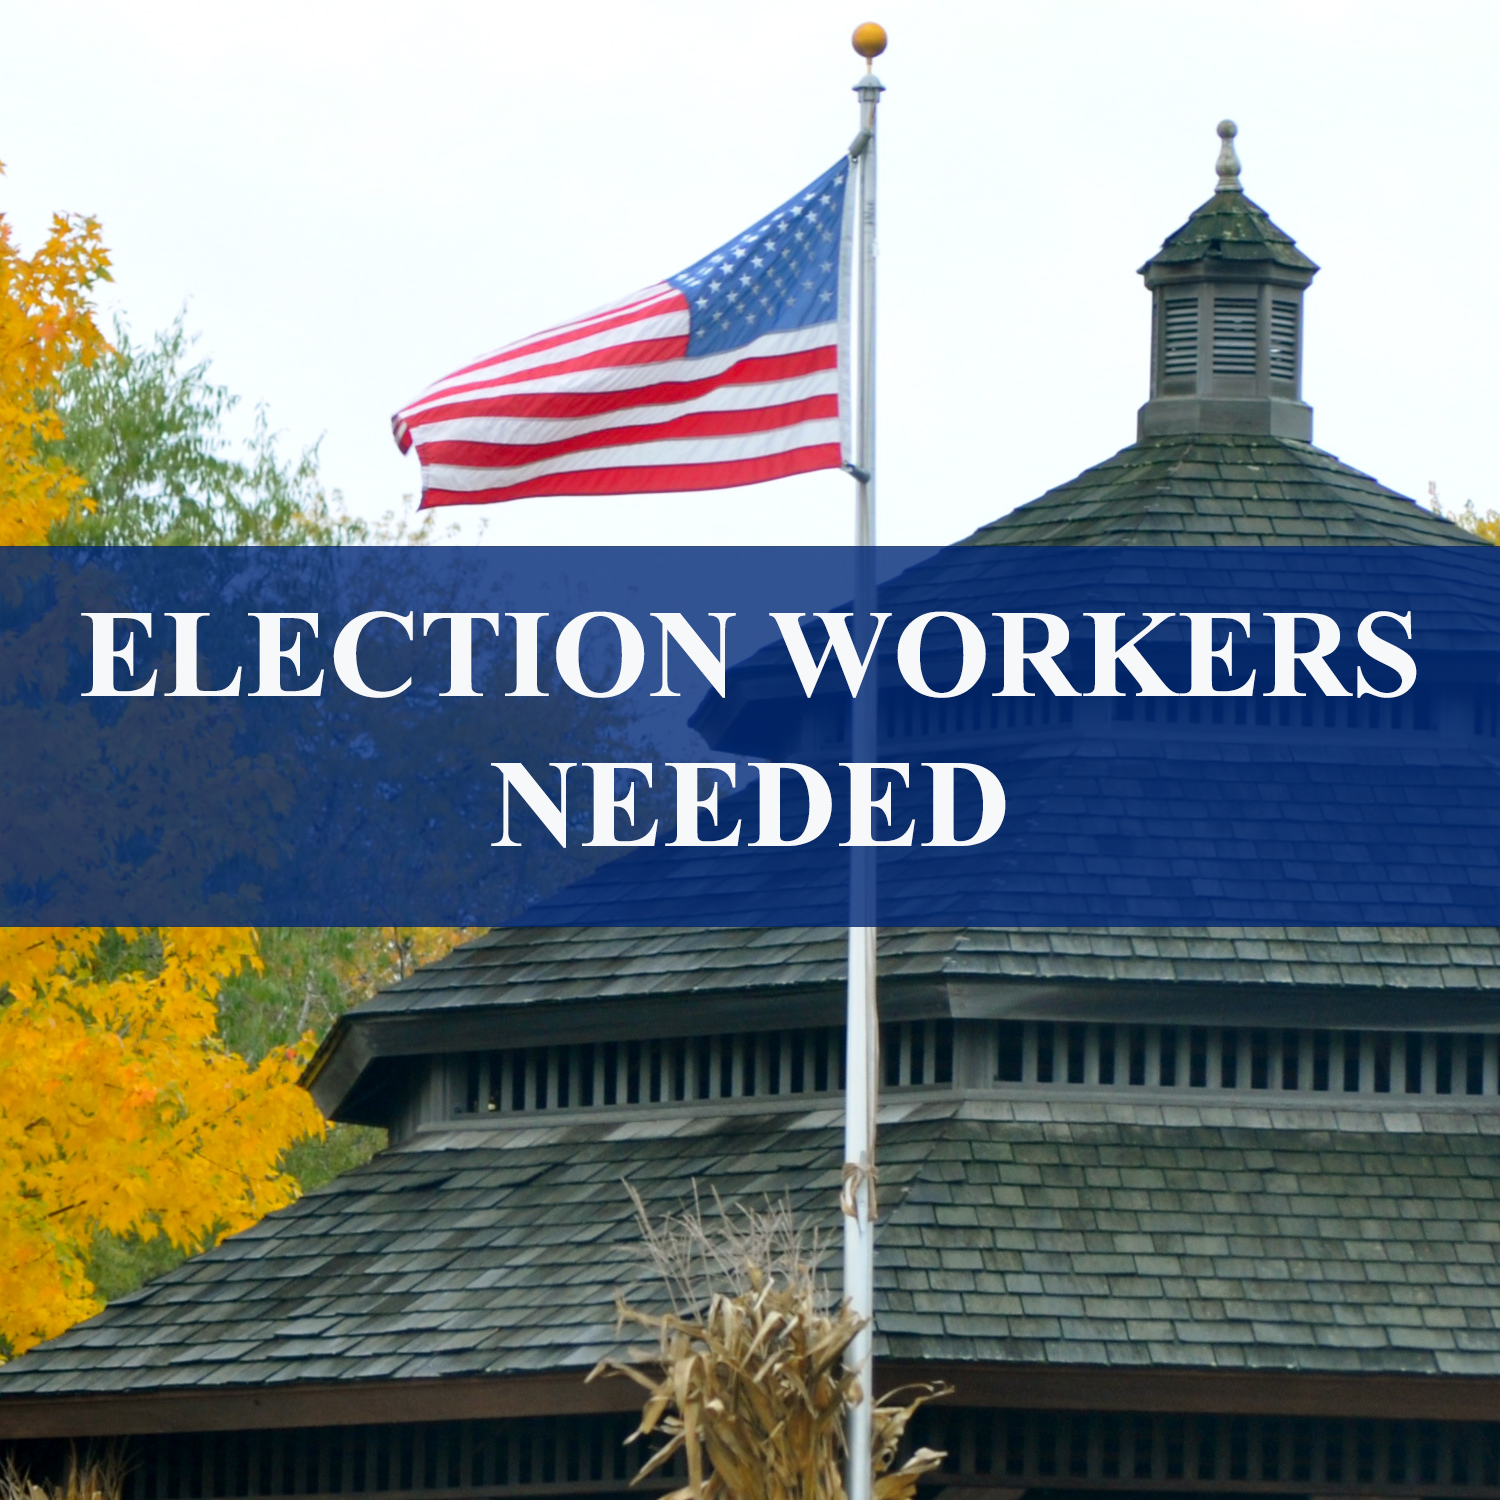 ELECTION WORKERS NEEDED